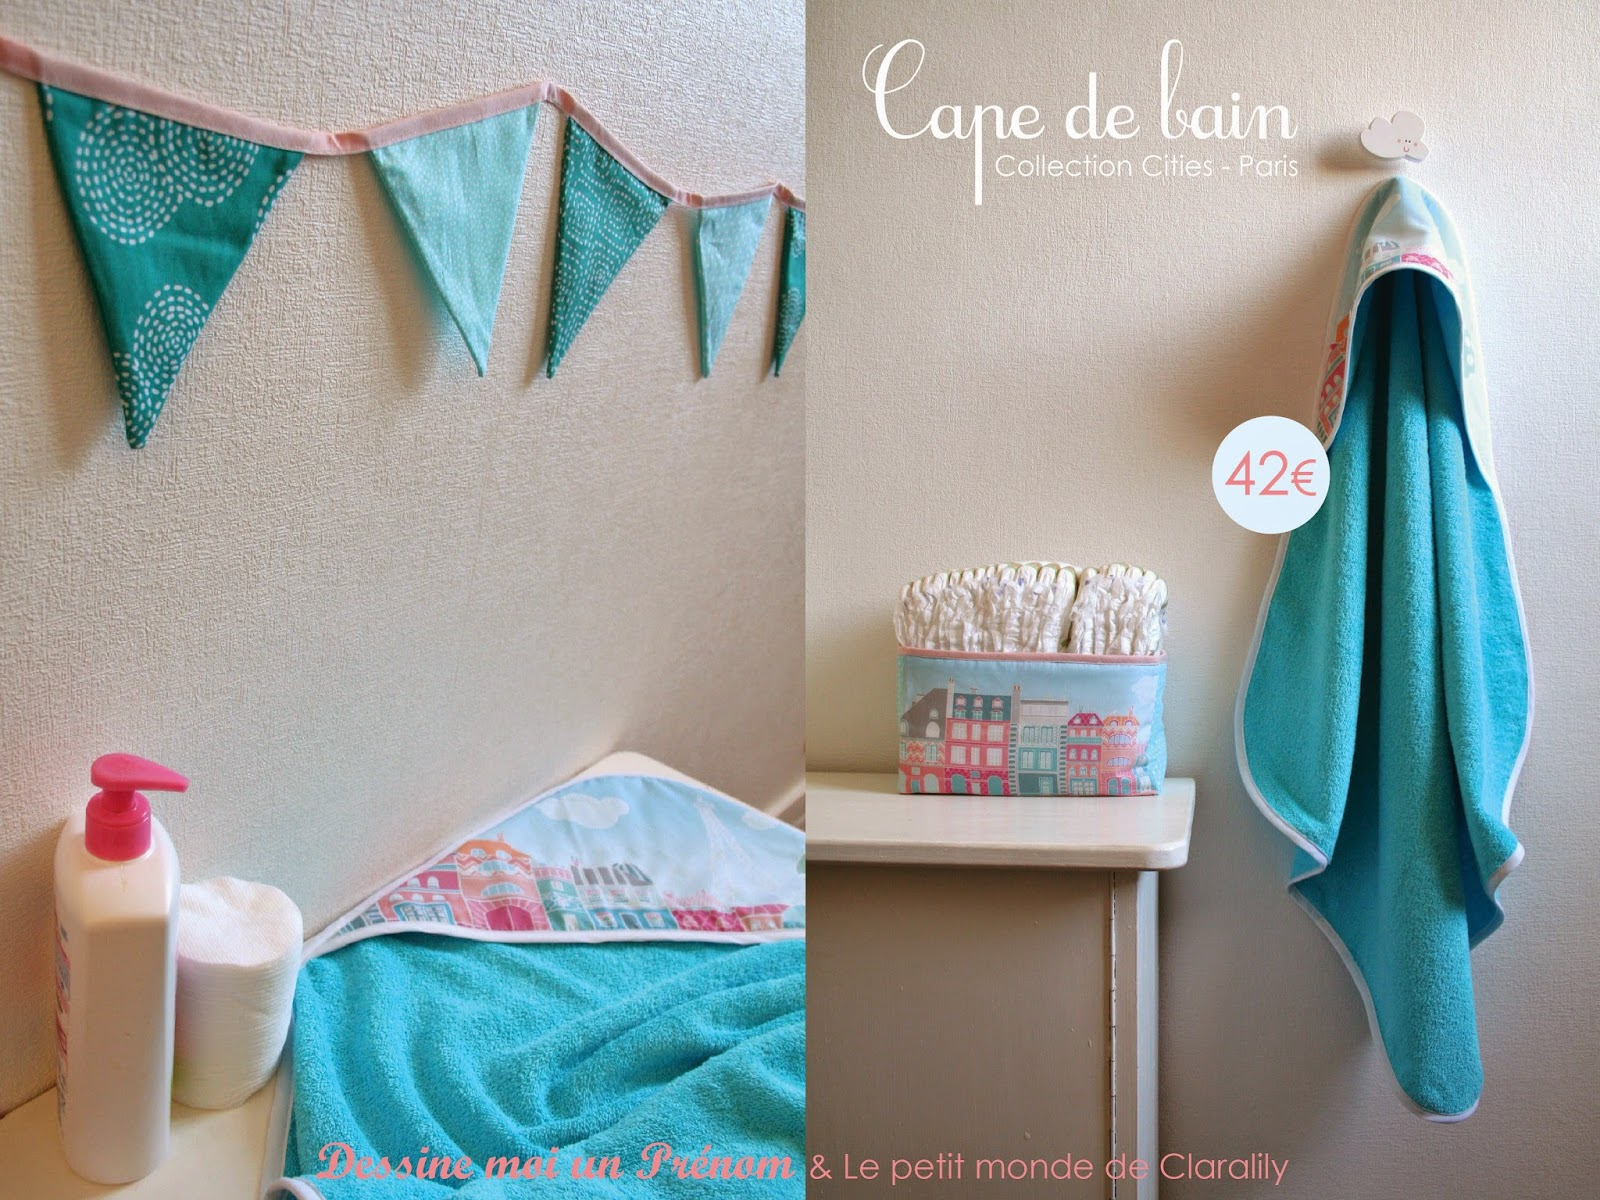 http://www.alittlemarket.com/puericulture/fr_cape_de_bain_turquoise_collection_cities_paris_-11961595.html